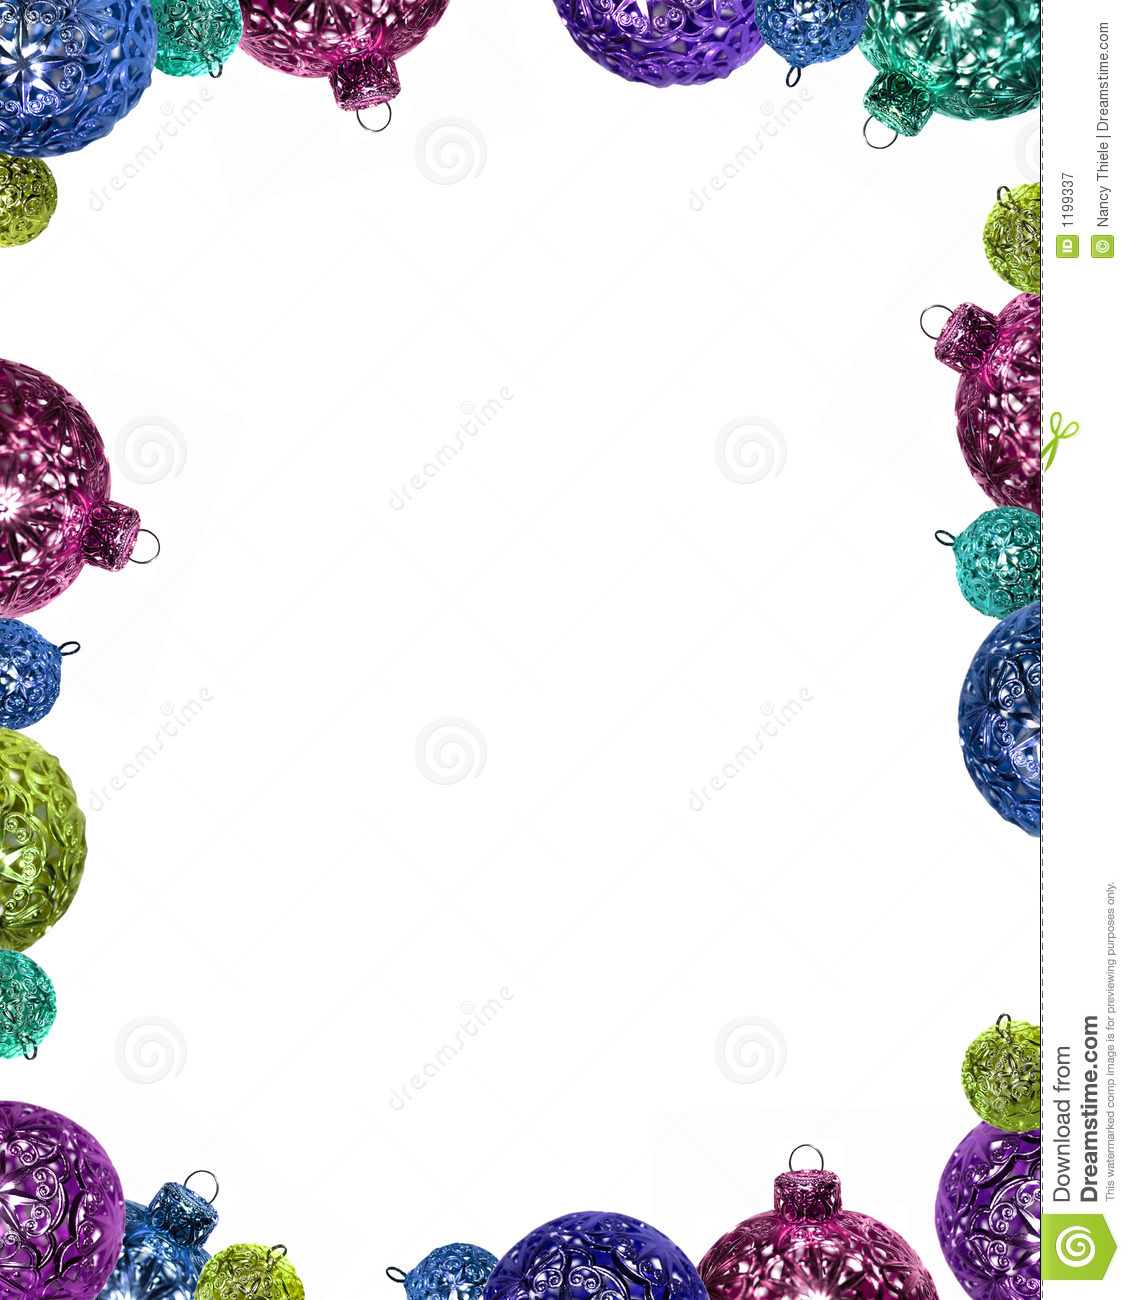 Christmas ornament frame stock image. Image of holiday - 1199337